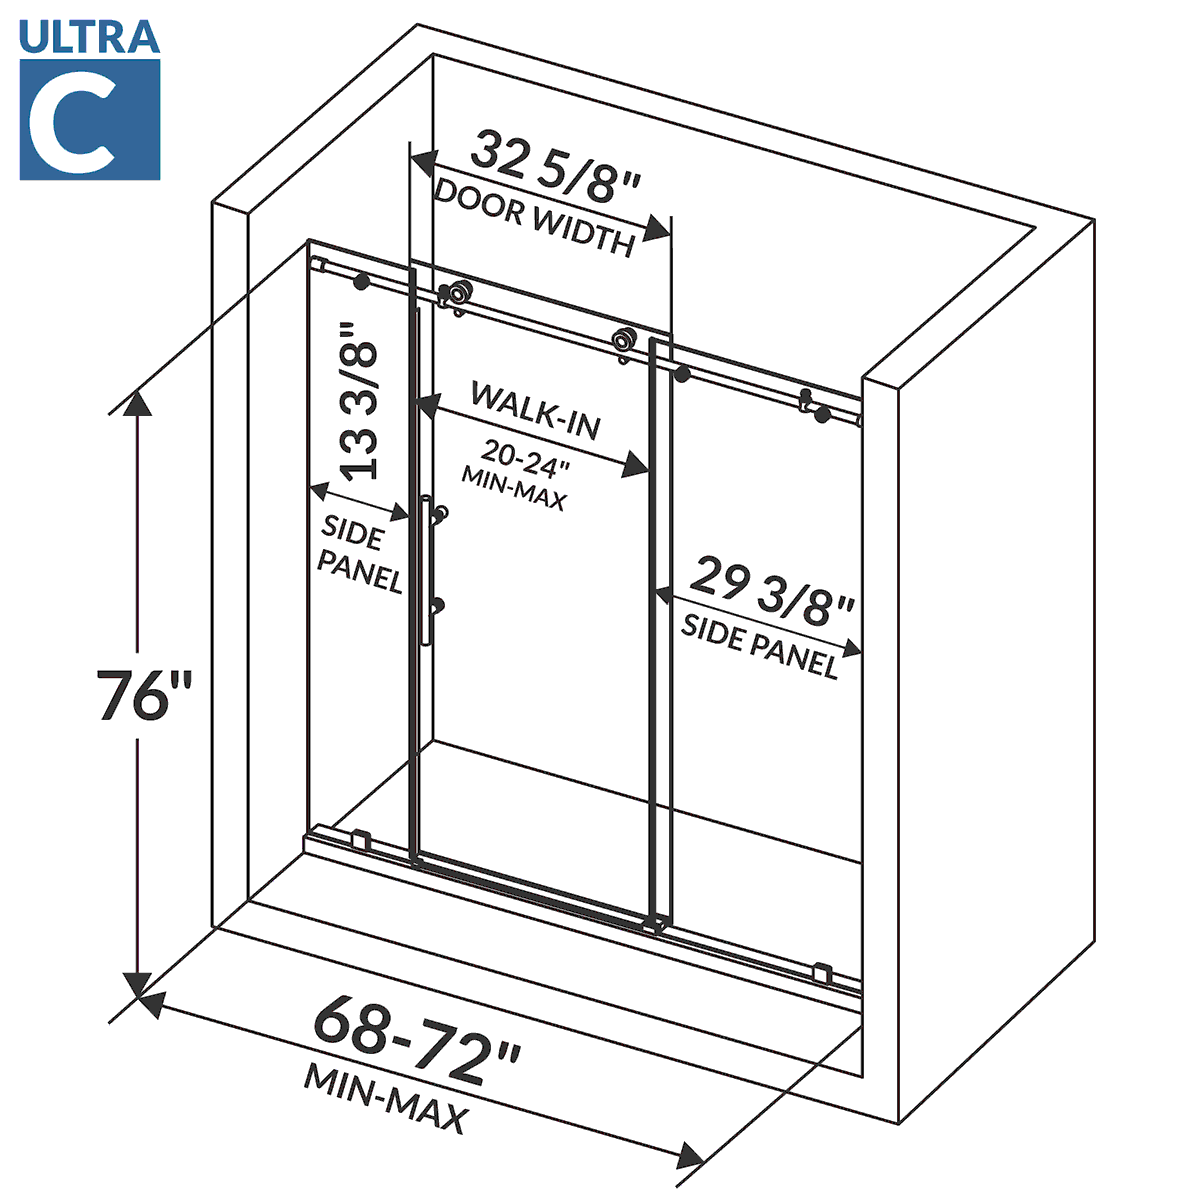 Lesscare clear glass shower door ultra b 44 48 wide x 76 high chrome - Dimensions